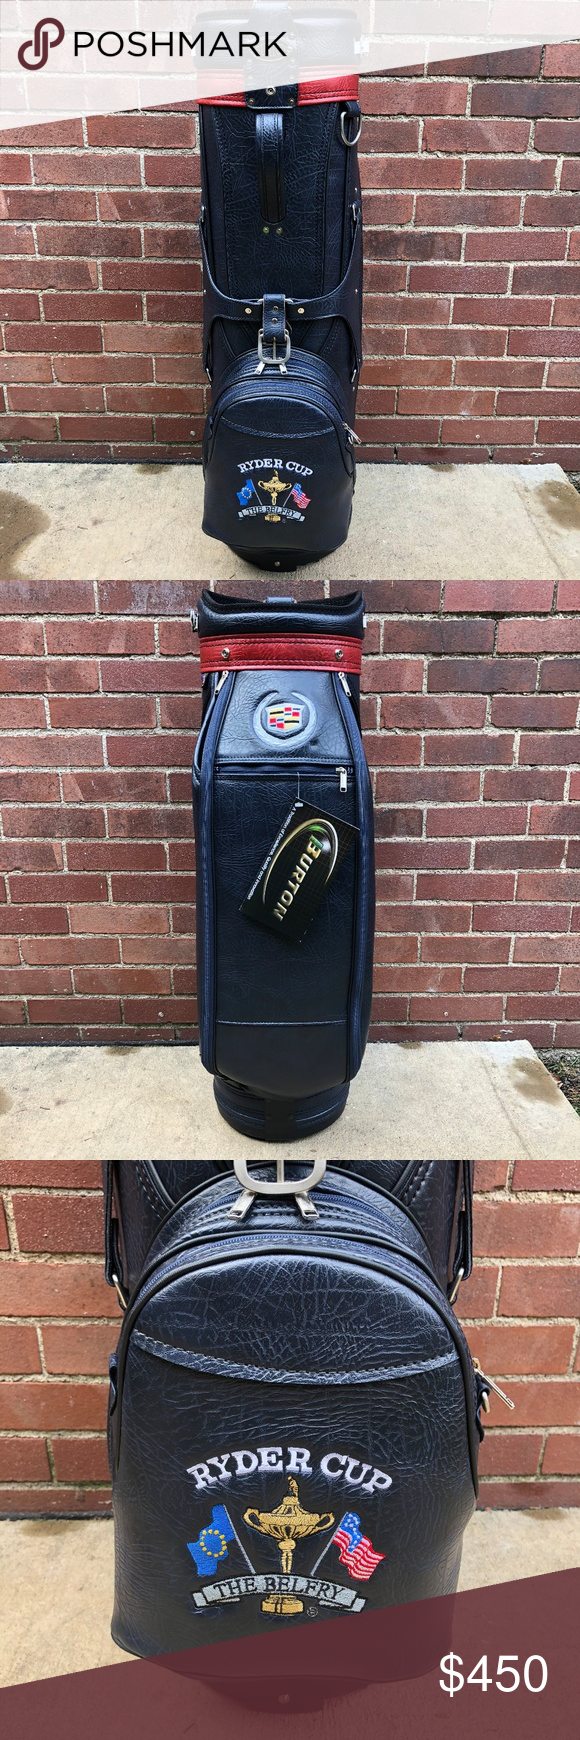 6fae6699c8c2 Burton Ryder Cup Cadillac The Belfry Golf Bag Rare Burton Cadillac the Ryder  Cup The Belfry Golf Bag Made in the USA. This bag is in mint condition  never ...